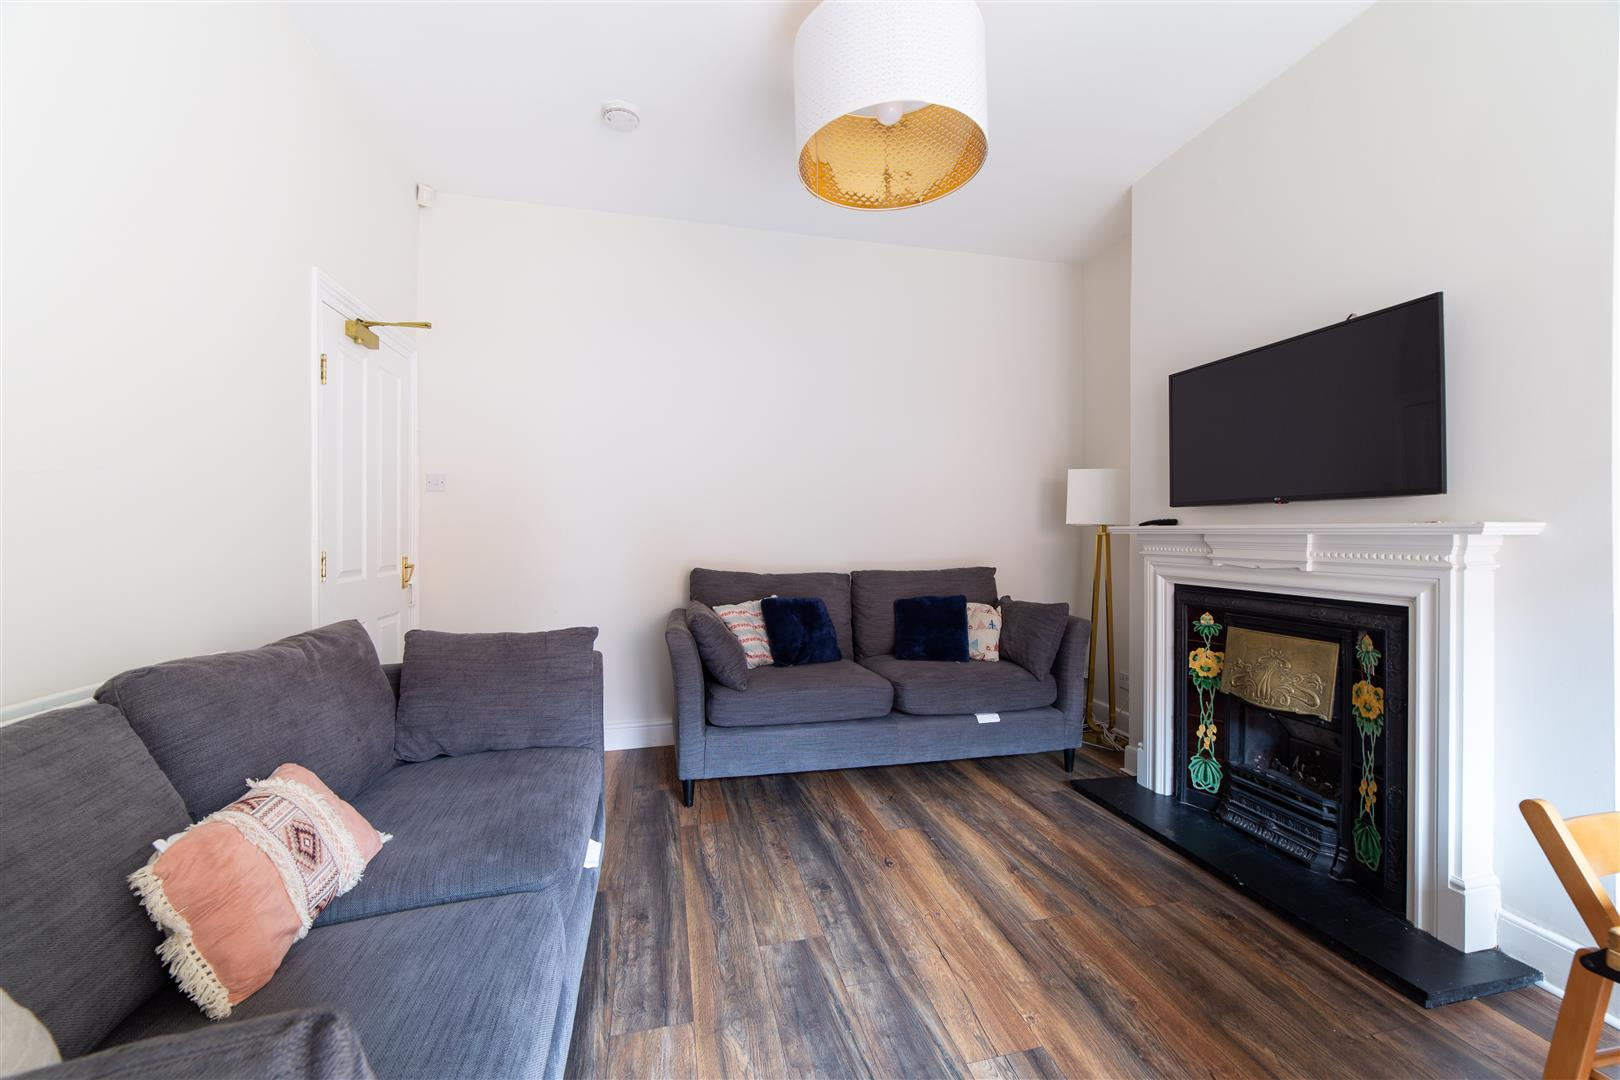 6 bed terraced house to rent in Newcastle Upon Tyne, NE2 1AY  - Property Image 3